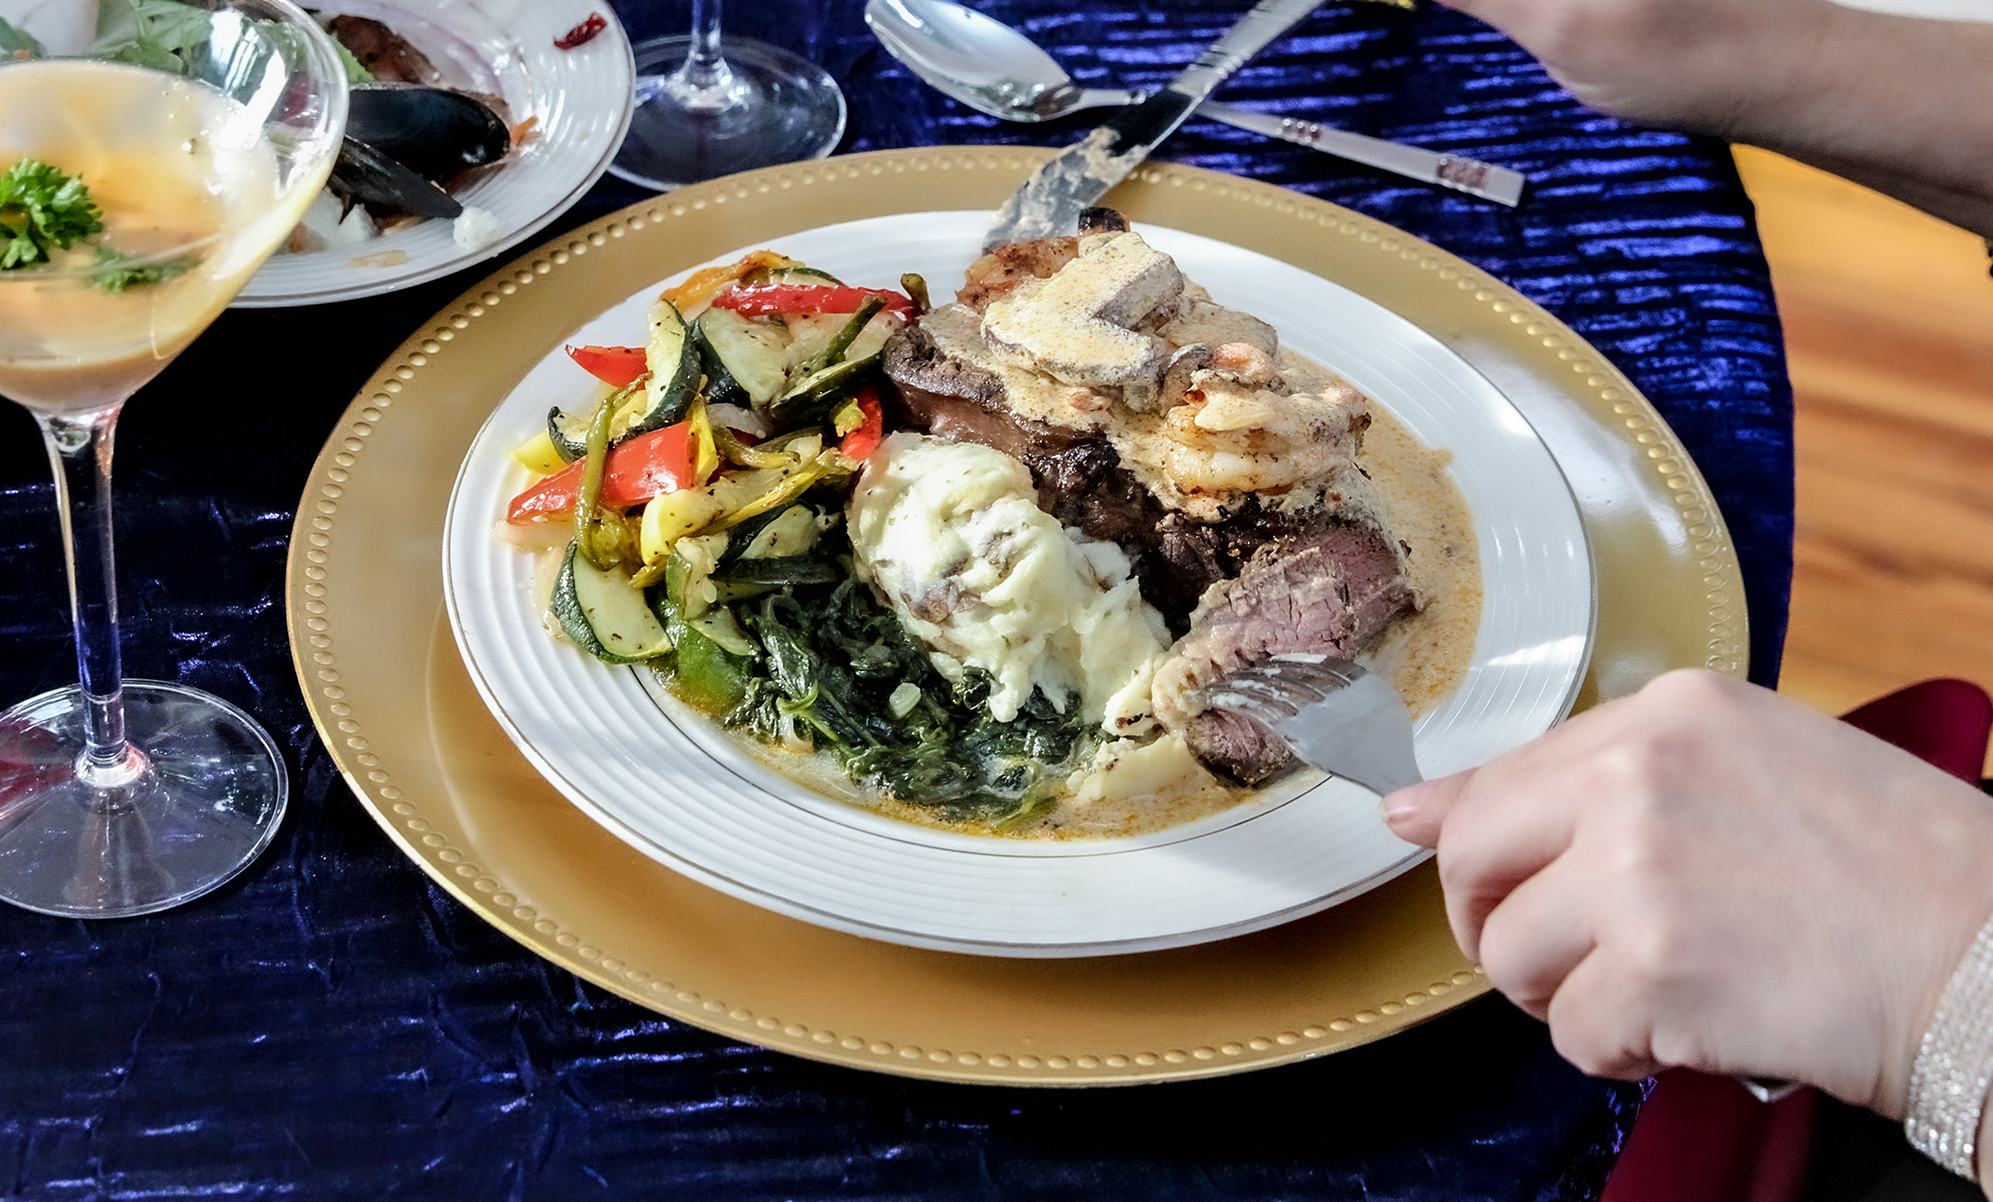 white hands using a fork to pick up steak on a plate of food